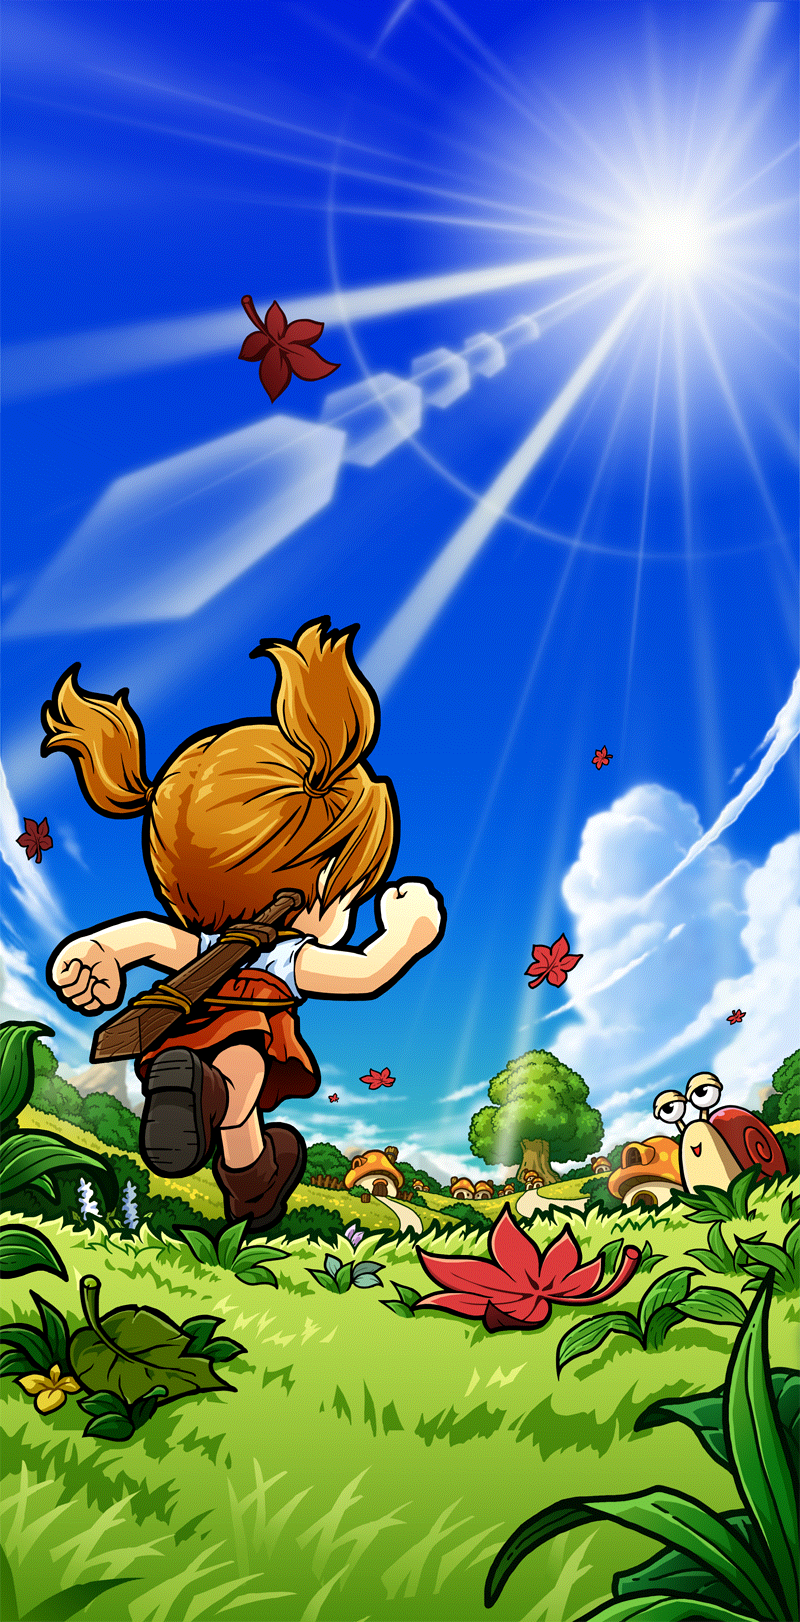 Officialmapleart Artwork Maple Story Maplestory 2